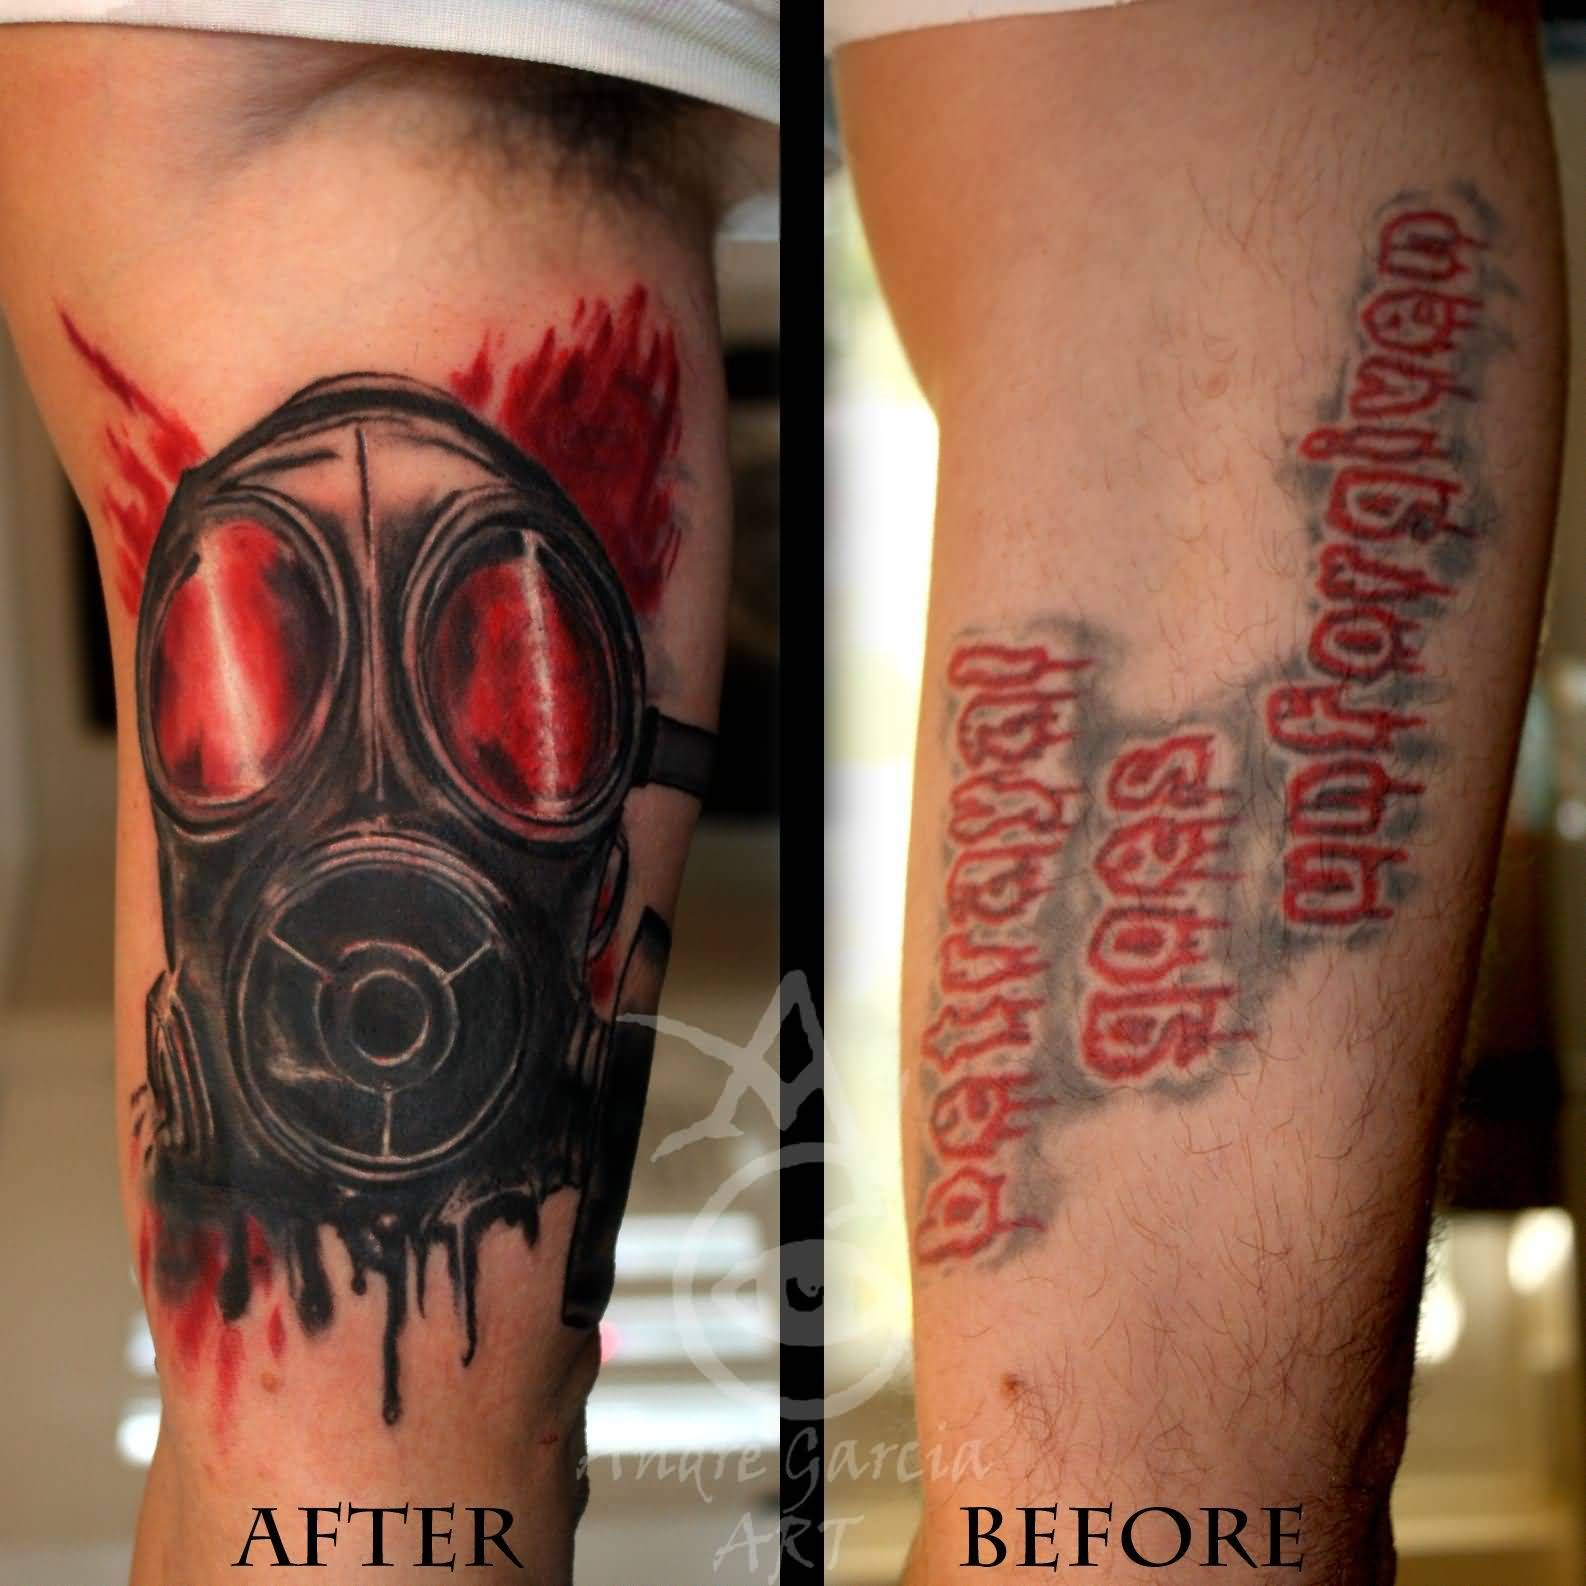 574a3a7fc04b6 Danger Gas Mask Cover Up Tattoo On Bicep   1   Gas mask tattoo, Mask ...